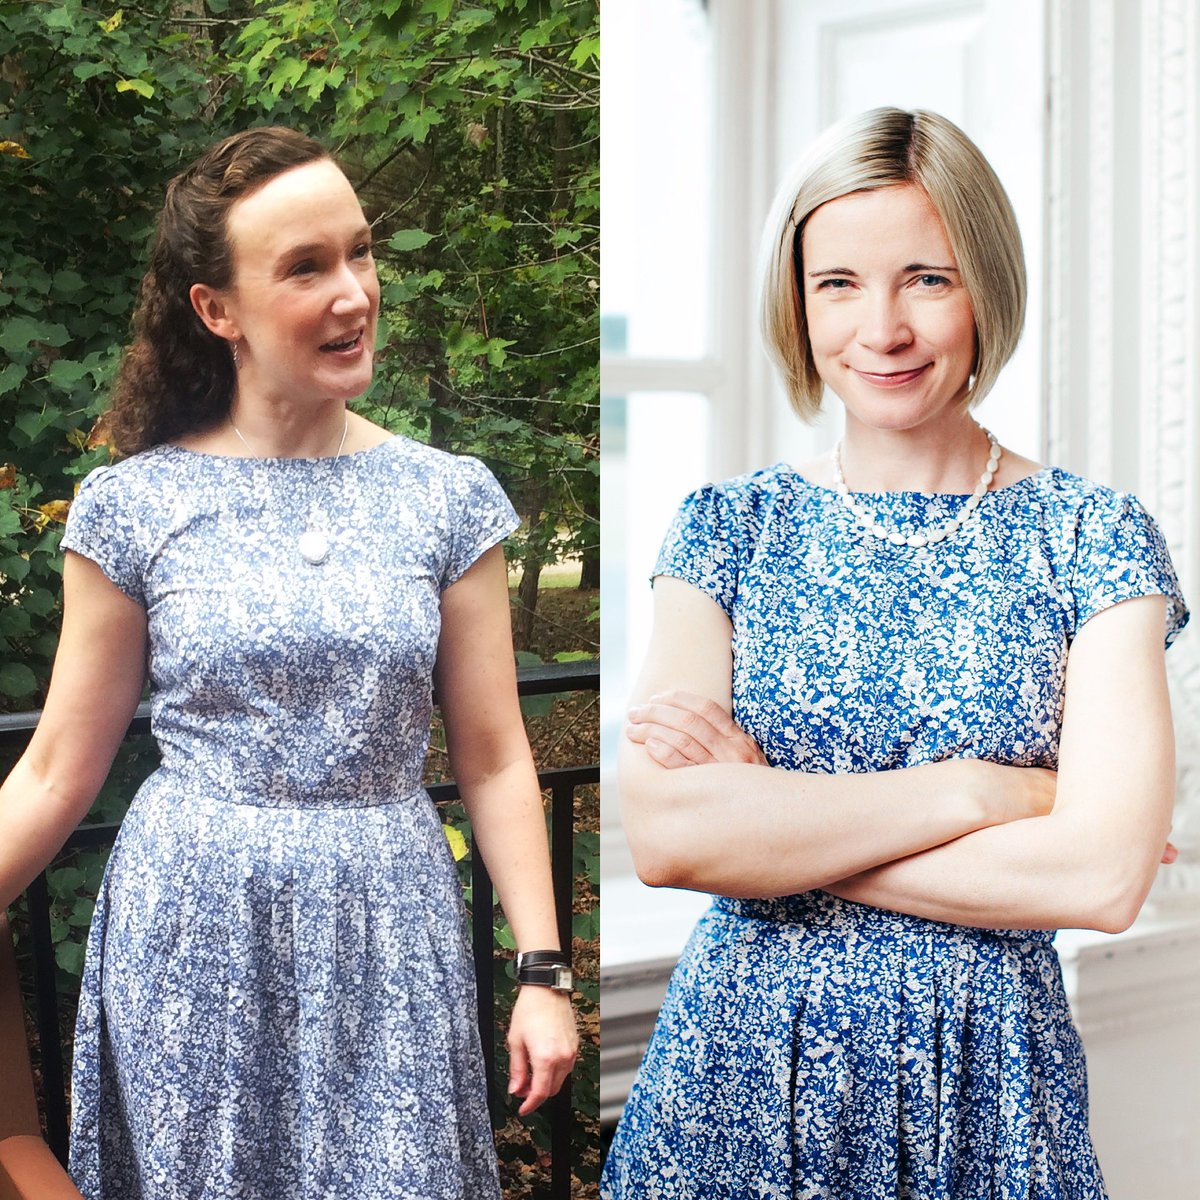 We had so much fun at #JASNAAGM2019 last week and say a huge thank you to all our supporters! We raised $1132 through our Silent Auction alone - here's the lucky new owner of a dress donated by @Lucy_Worsley. We would ask #whoworeitbetter but think they both look fabulous! 💃